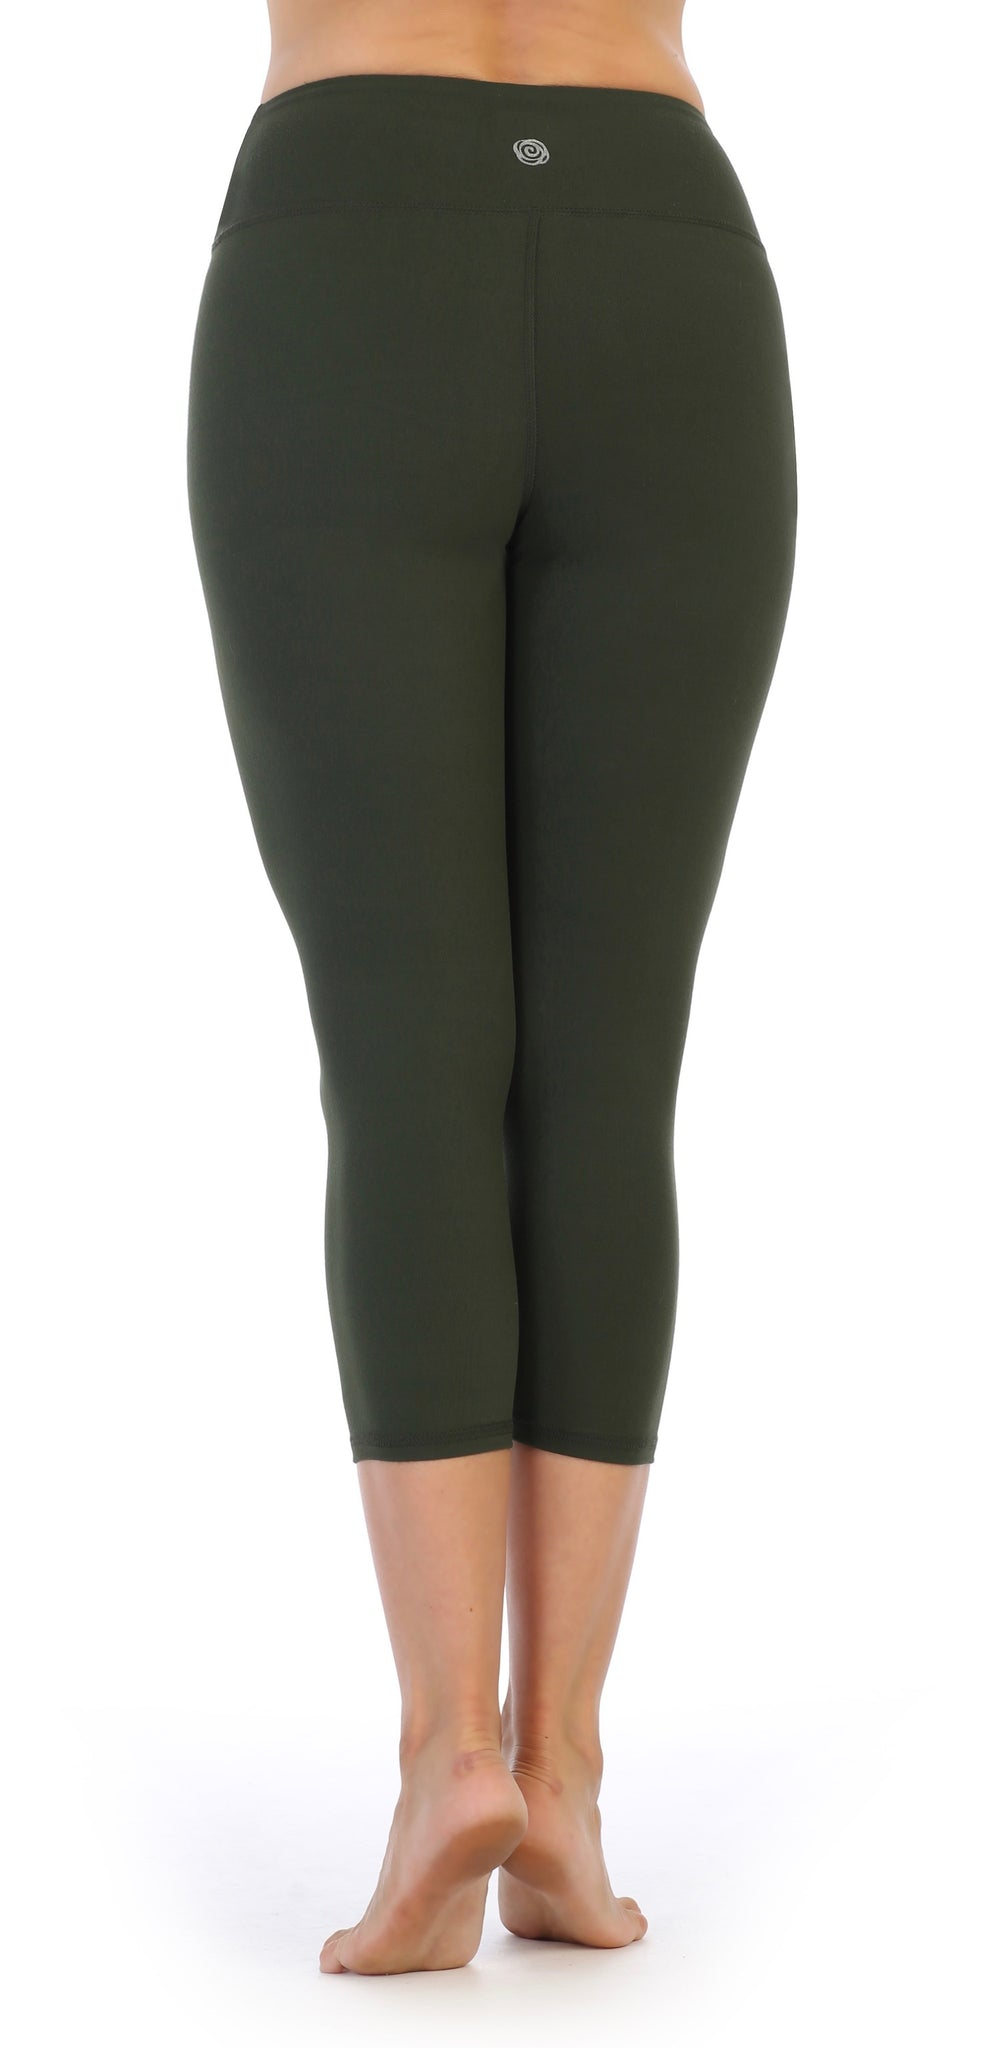 Olive-Compression 3-4 Length Leggings-high waist-back